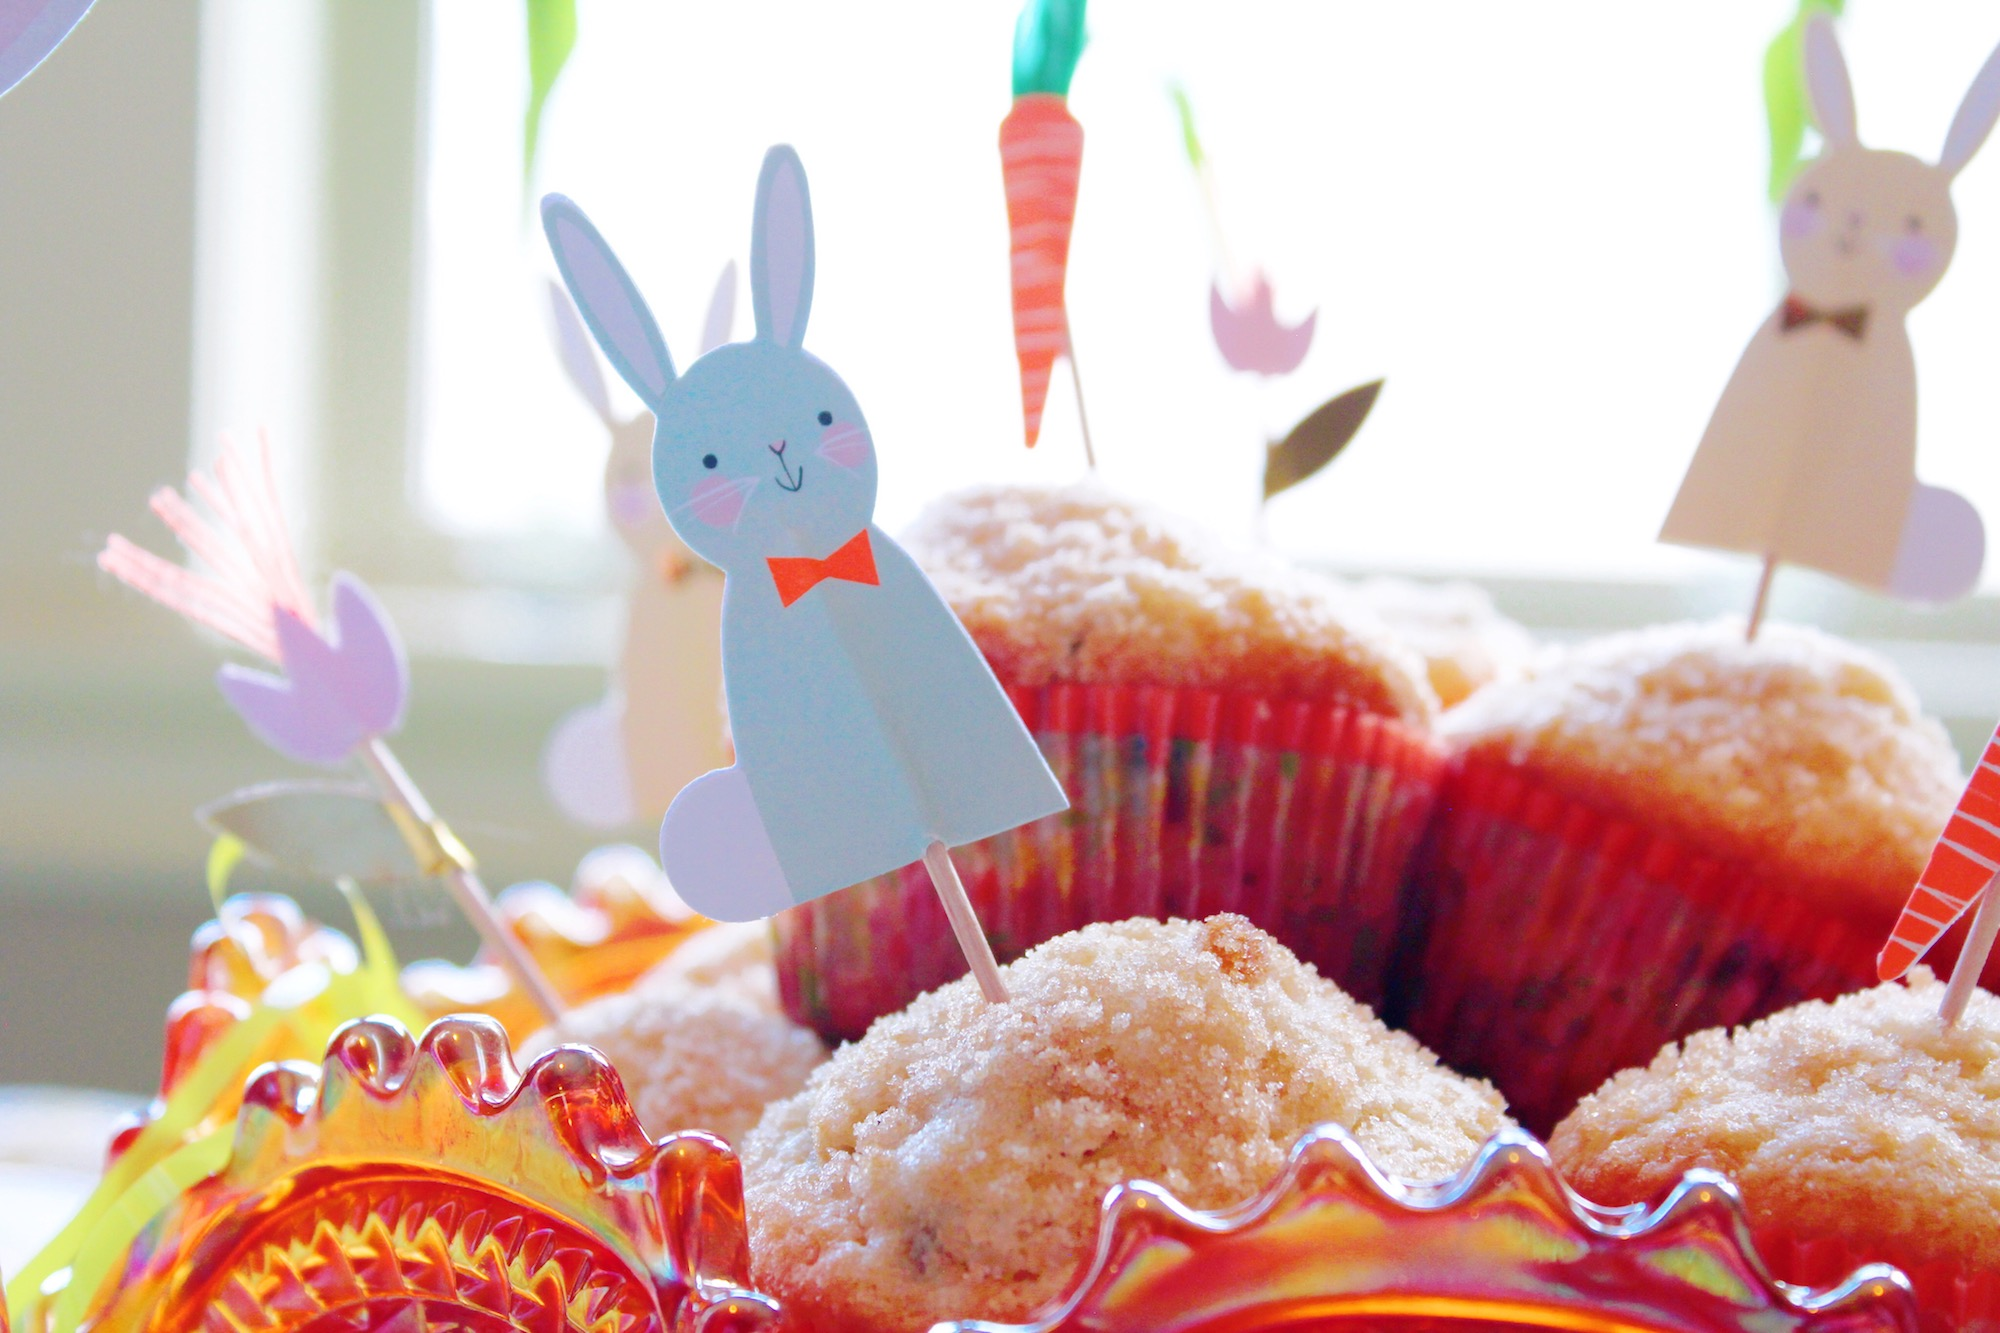 Easter Bunny Cupcake Topper_Easter Morning Breakfast Muffin_Design Organize Party.JPG